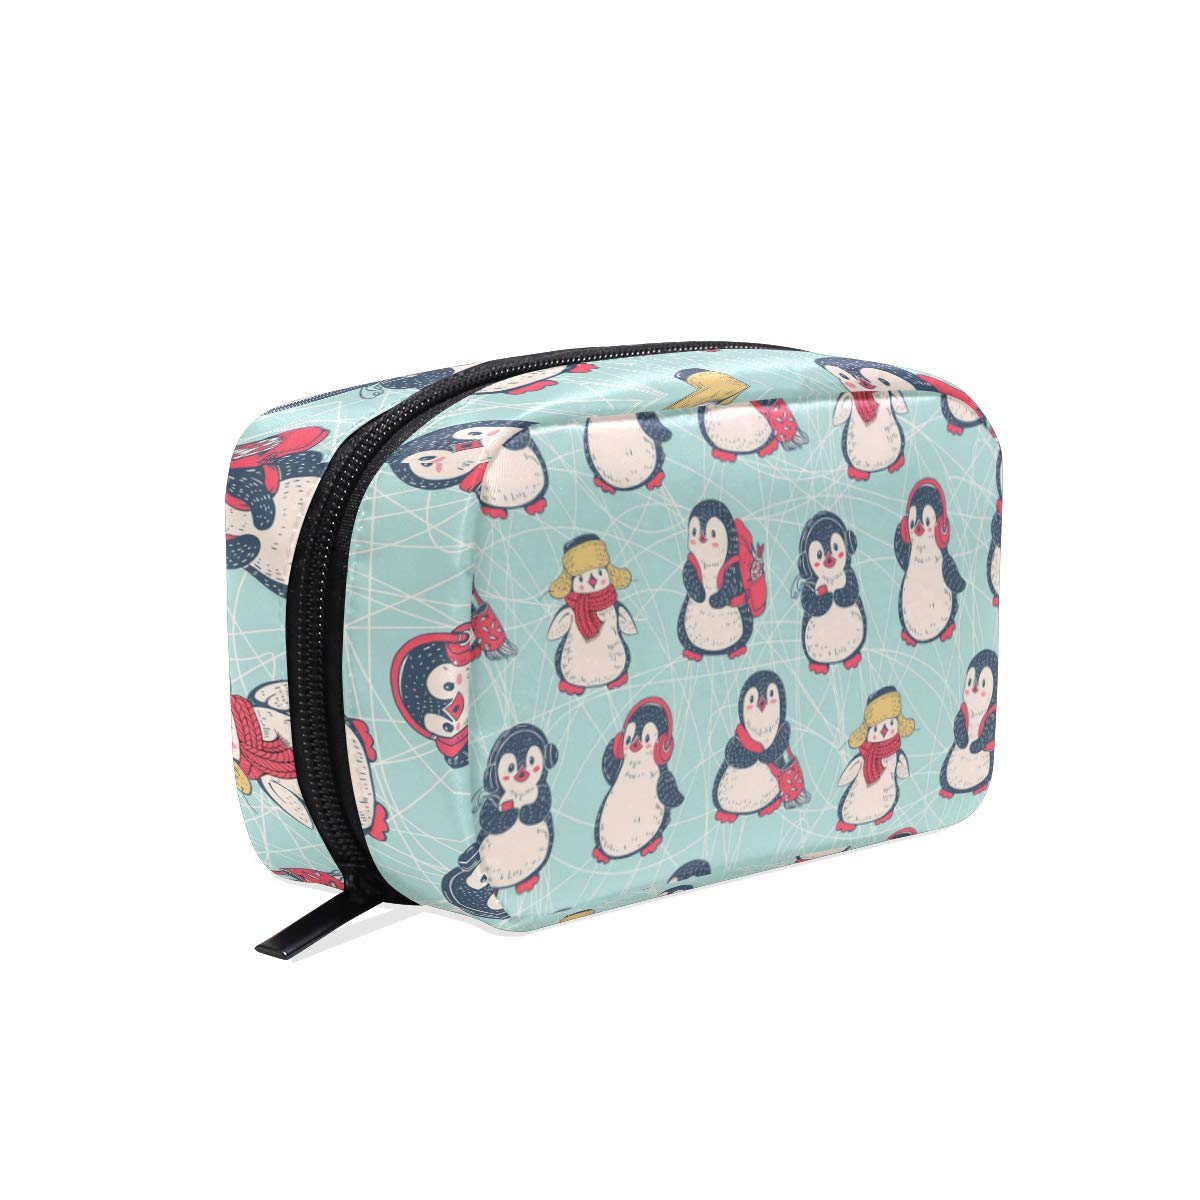 ZZAEO Winter Cute Penguin Makeup Organizer Mini Printing Cosmetics Bag Travel Toiletry Bag Small Beauty Bag Travel Accessories for Teens Girls Women